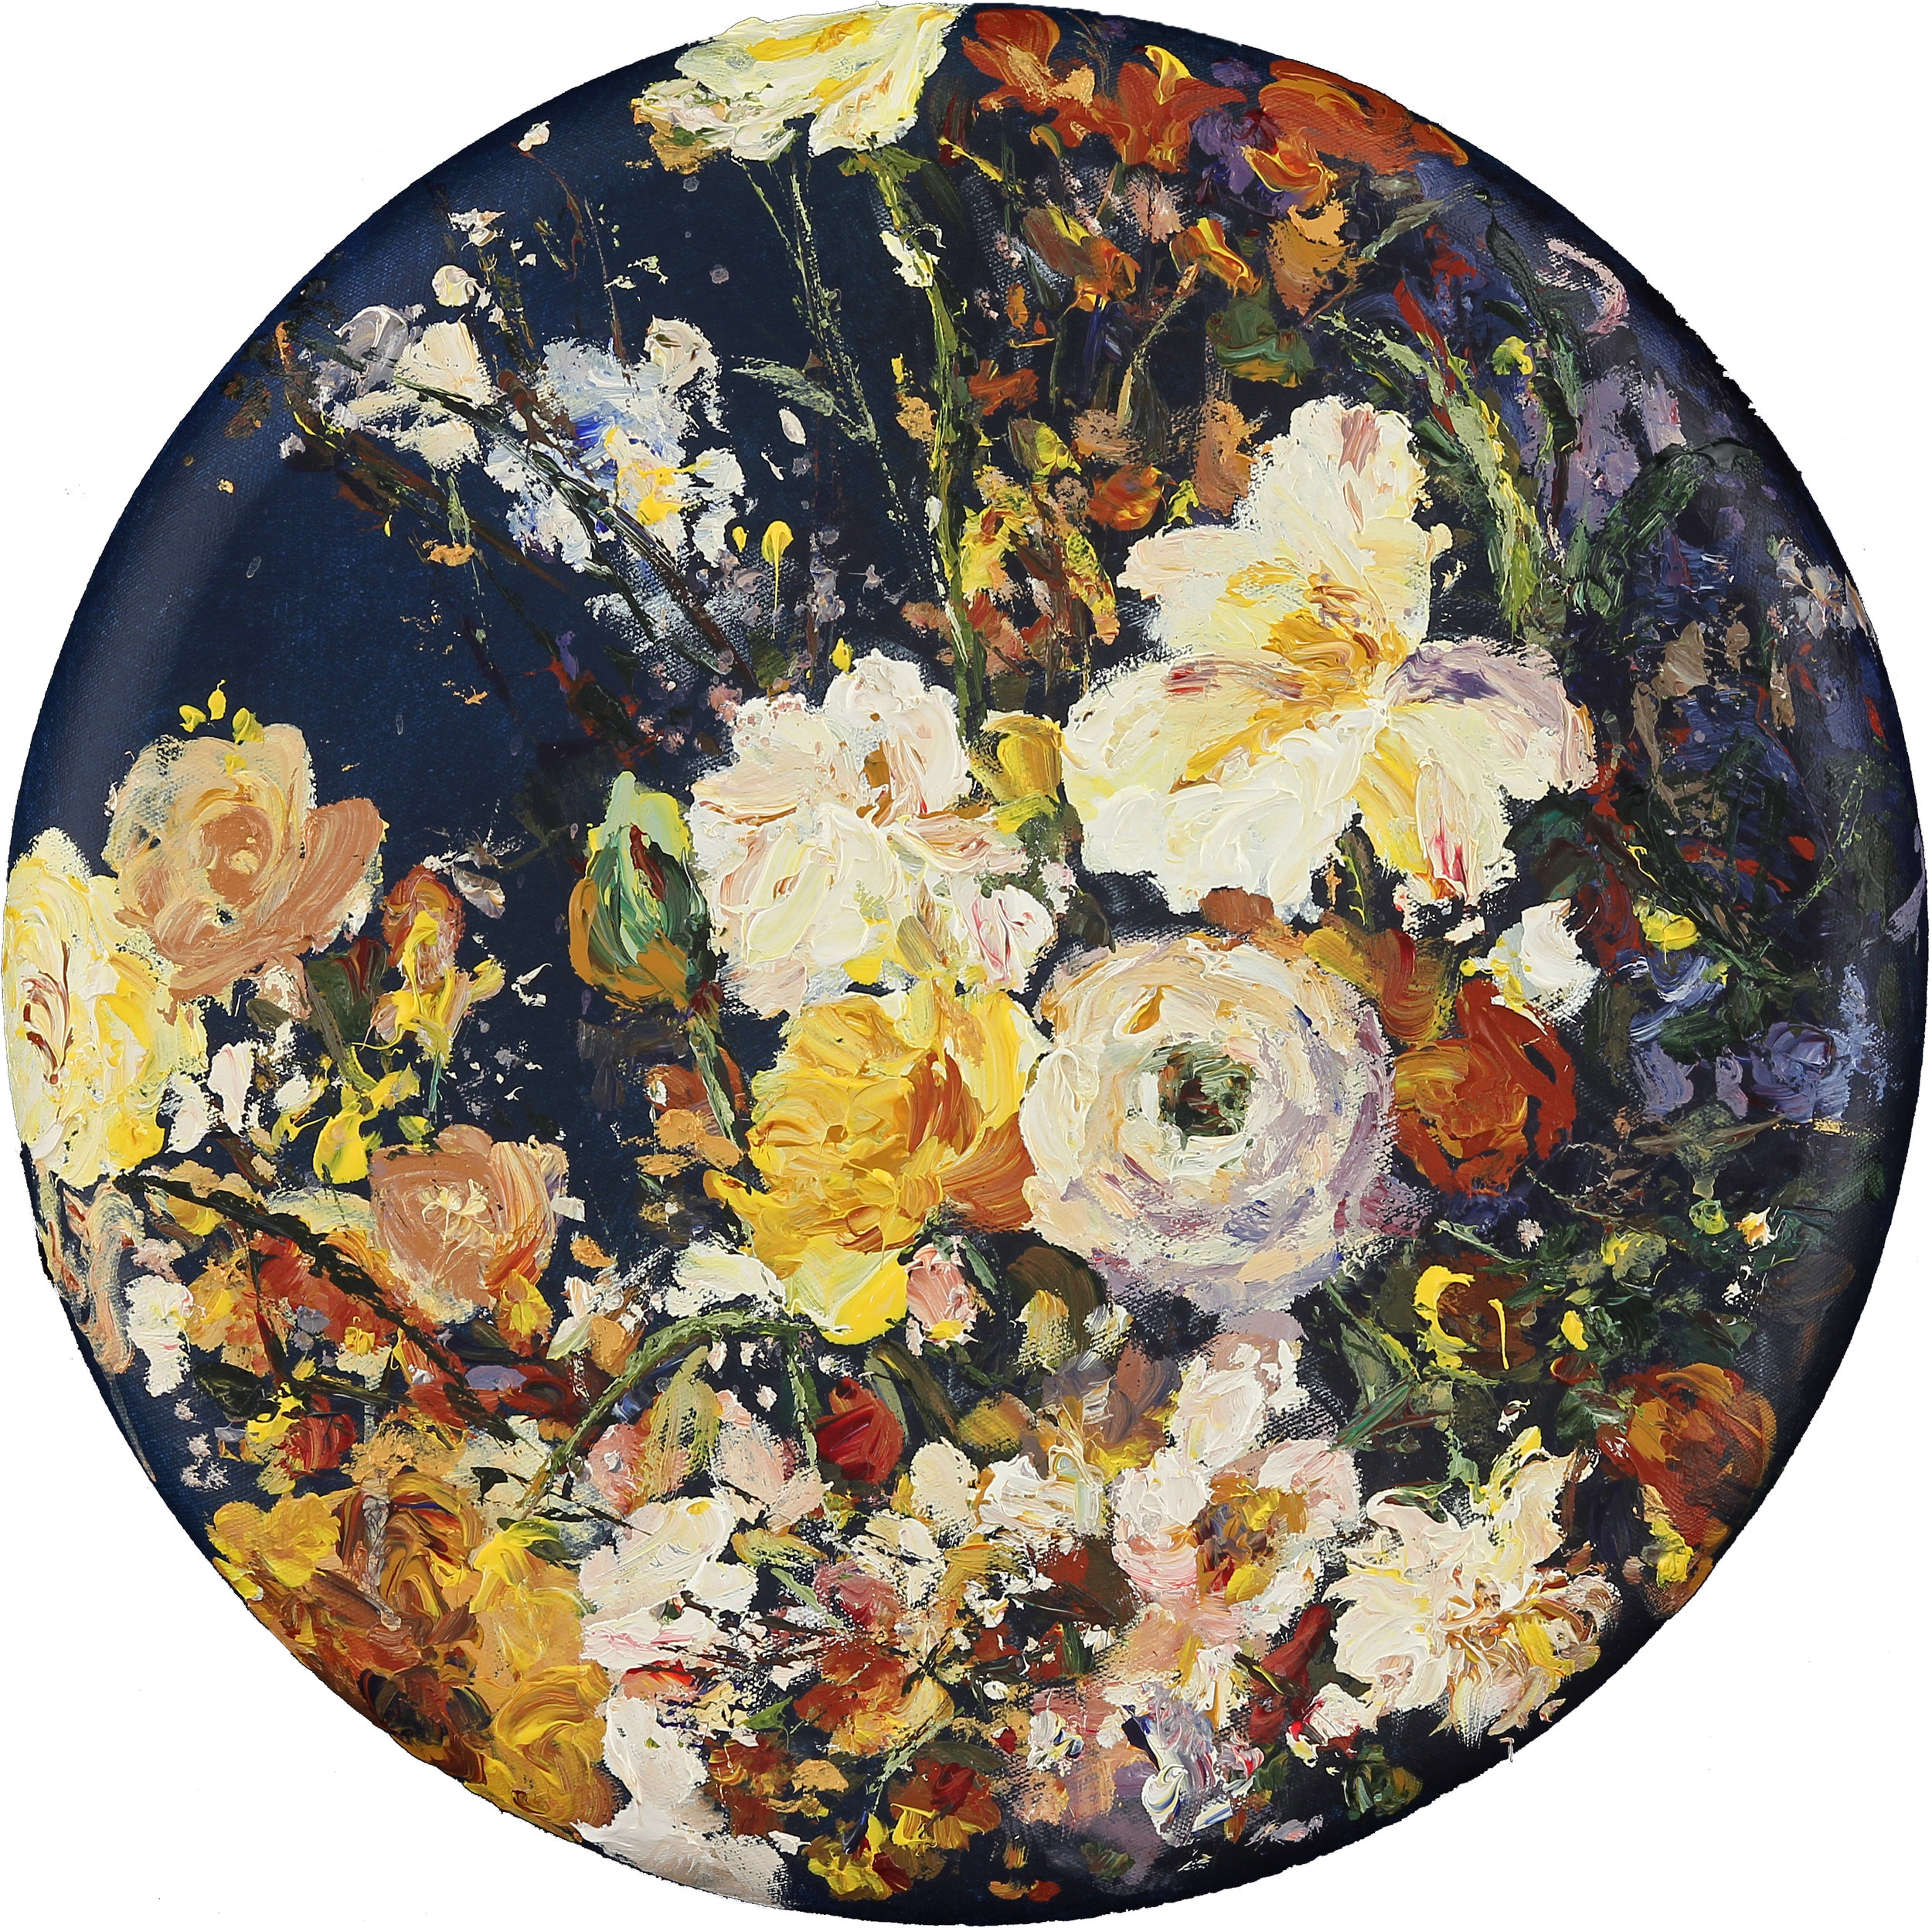 "Poetry in Colors, 16"" in diameter, acrylic on canvas, 2016"